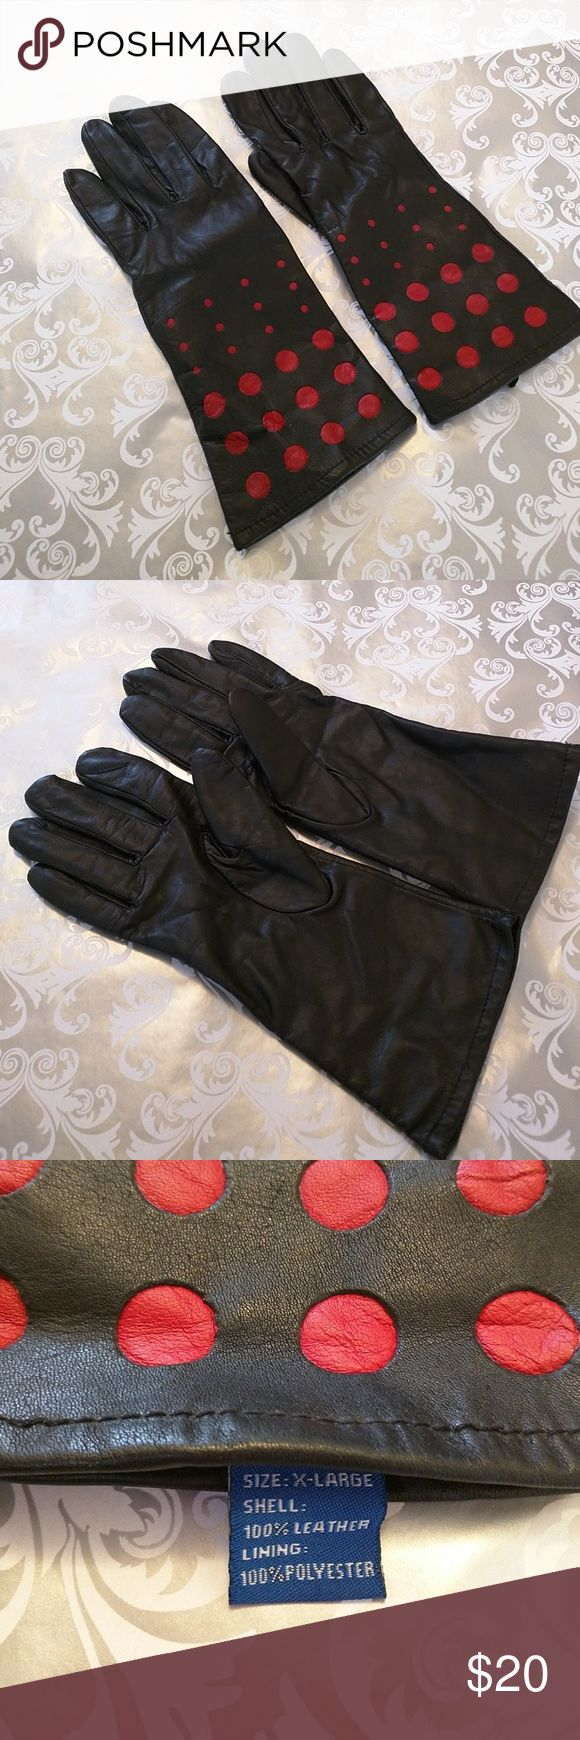 Driving gloves auckland - Black Leather Gloves With Red Polka Dots Size Xl Rarely Worn Excellent Condition Exterior Is